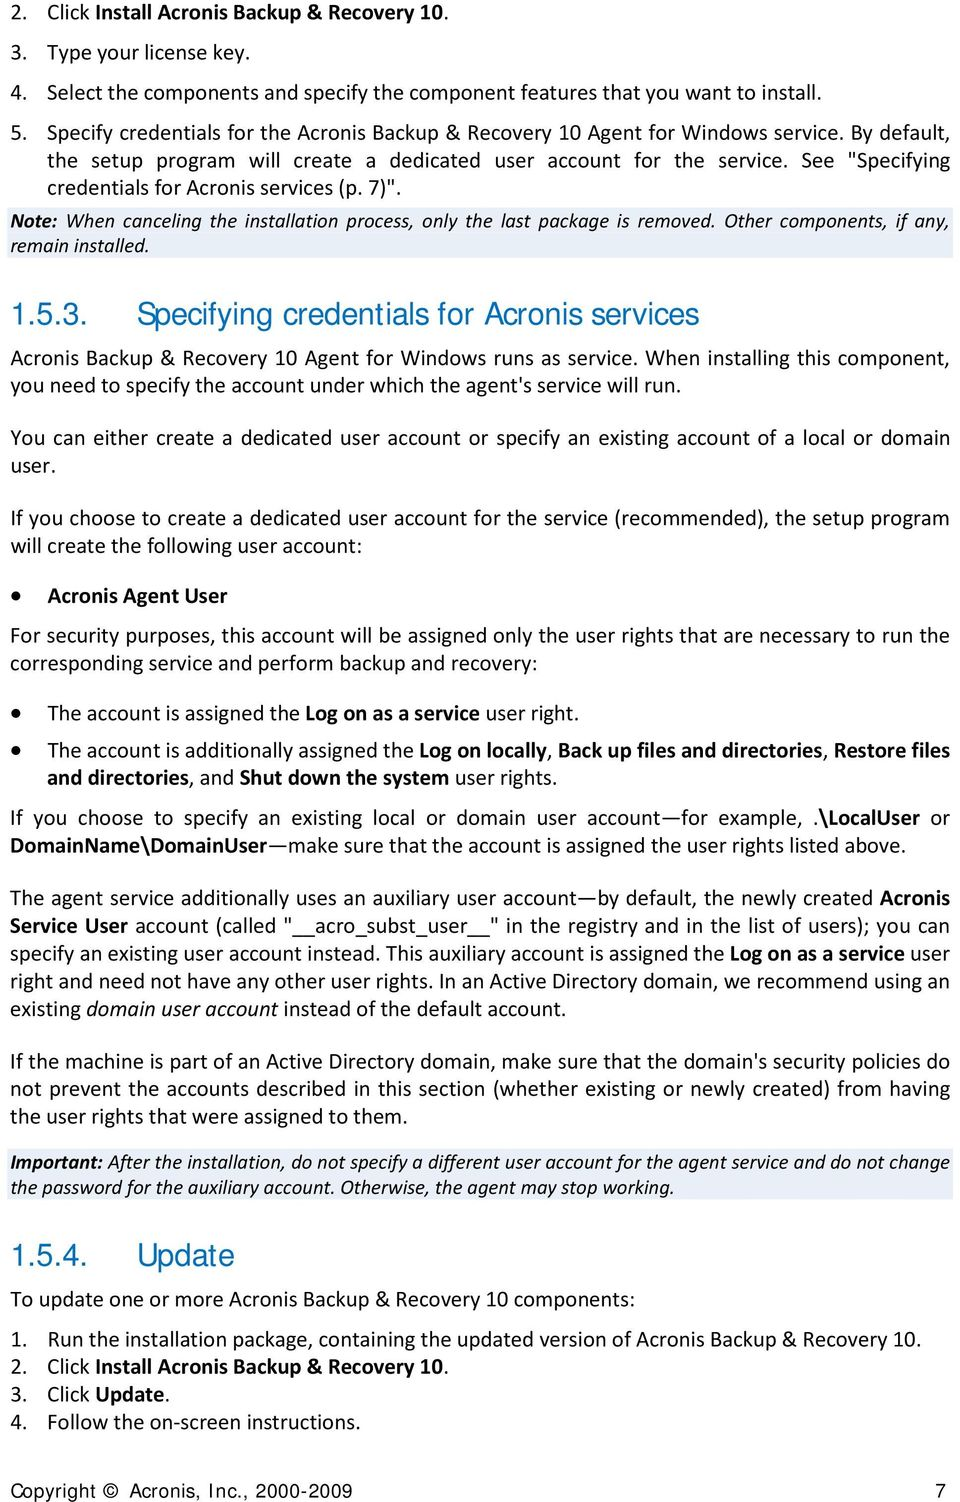 "See ""Specifying credentials for Acronis services (p. 7)"". Note: When canceling the installation process, only the last package is removed. Other components, if any, remain installed. 1.5.3."